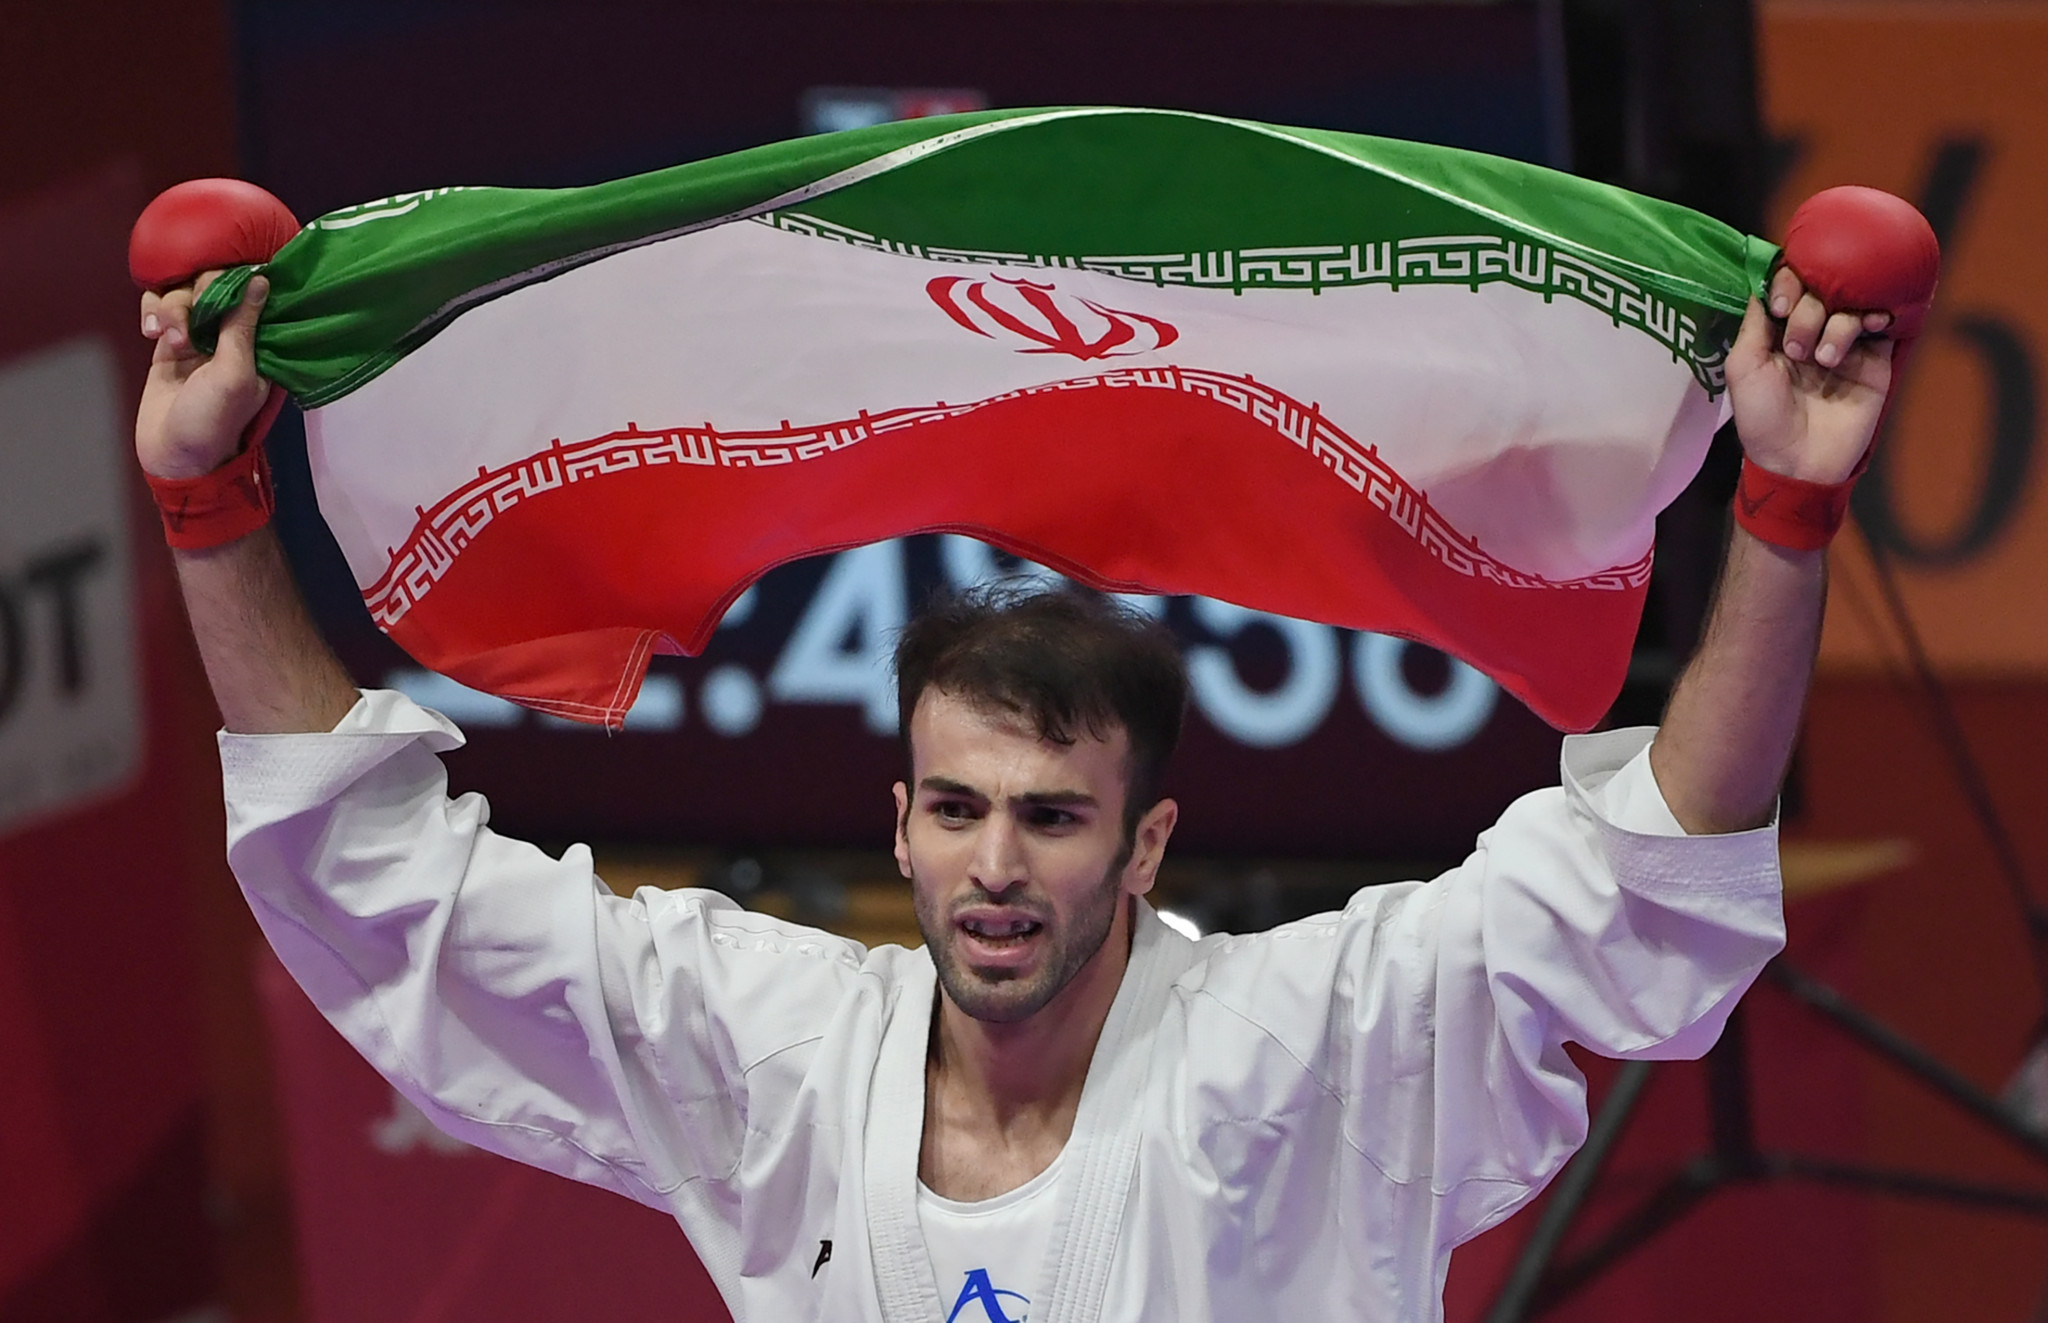 Iranian world champion to miss karate's Olympic debut after doping ban